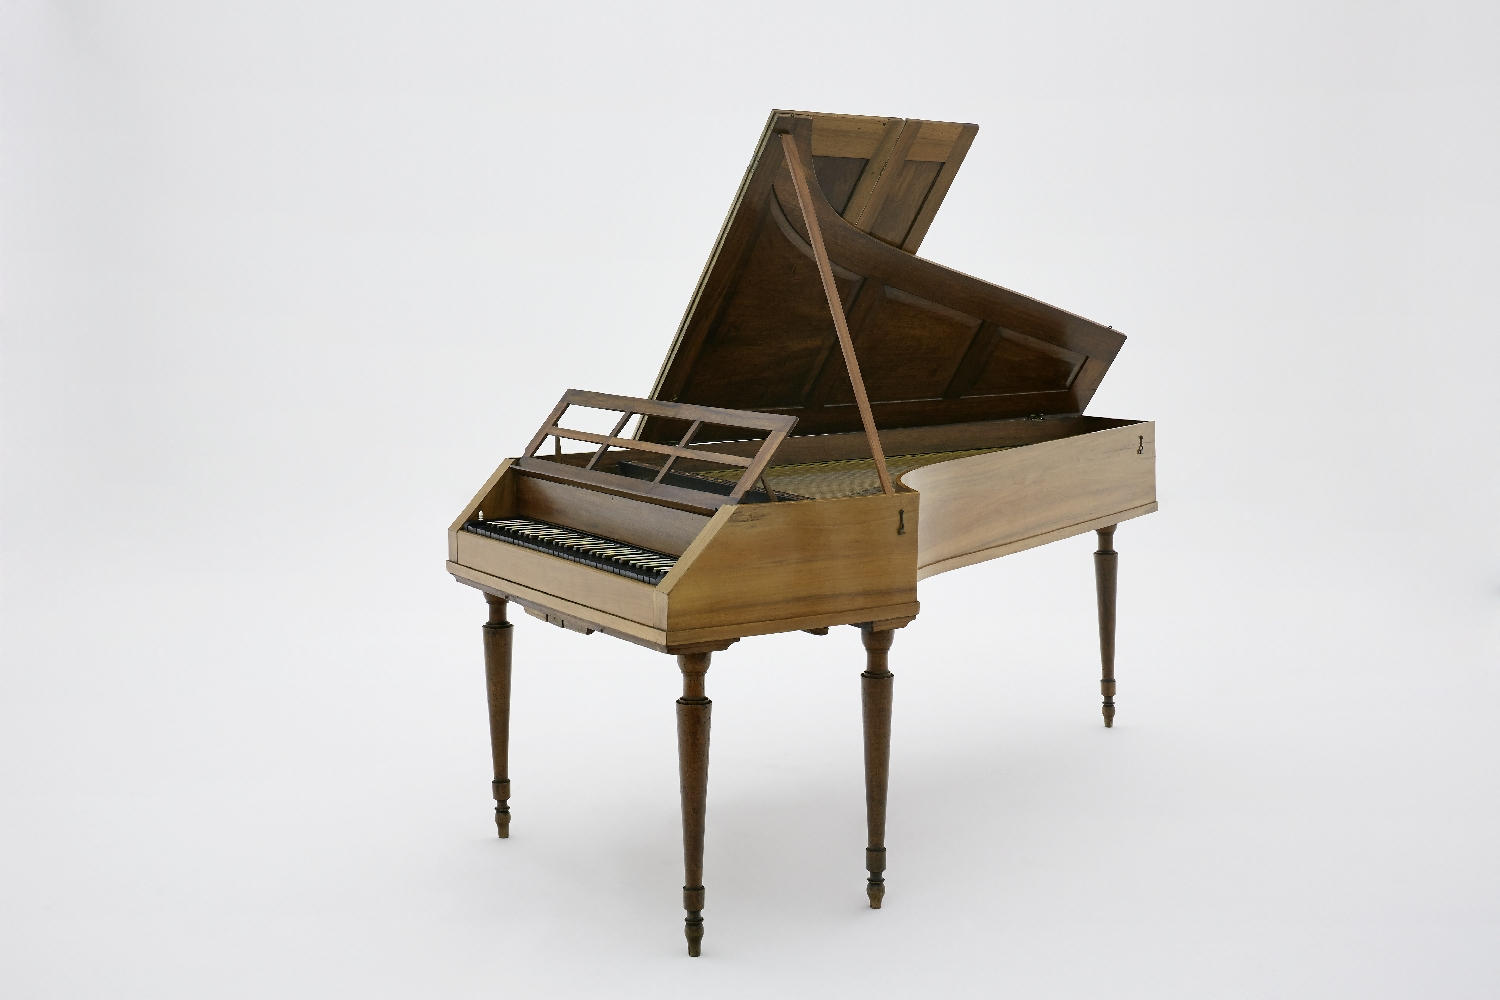 Fortepiano owned by Johann Michael Haydn, Johann Schmid, Salzburg, 1803, walnut, veneered, brass, steel, inv. no. MI 1035